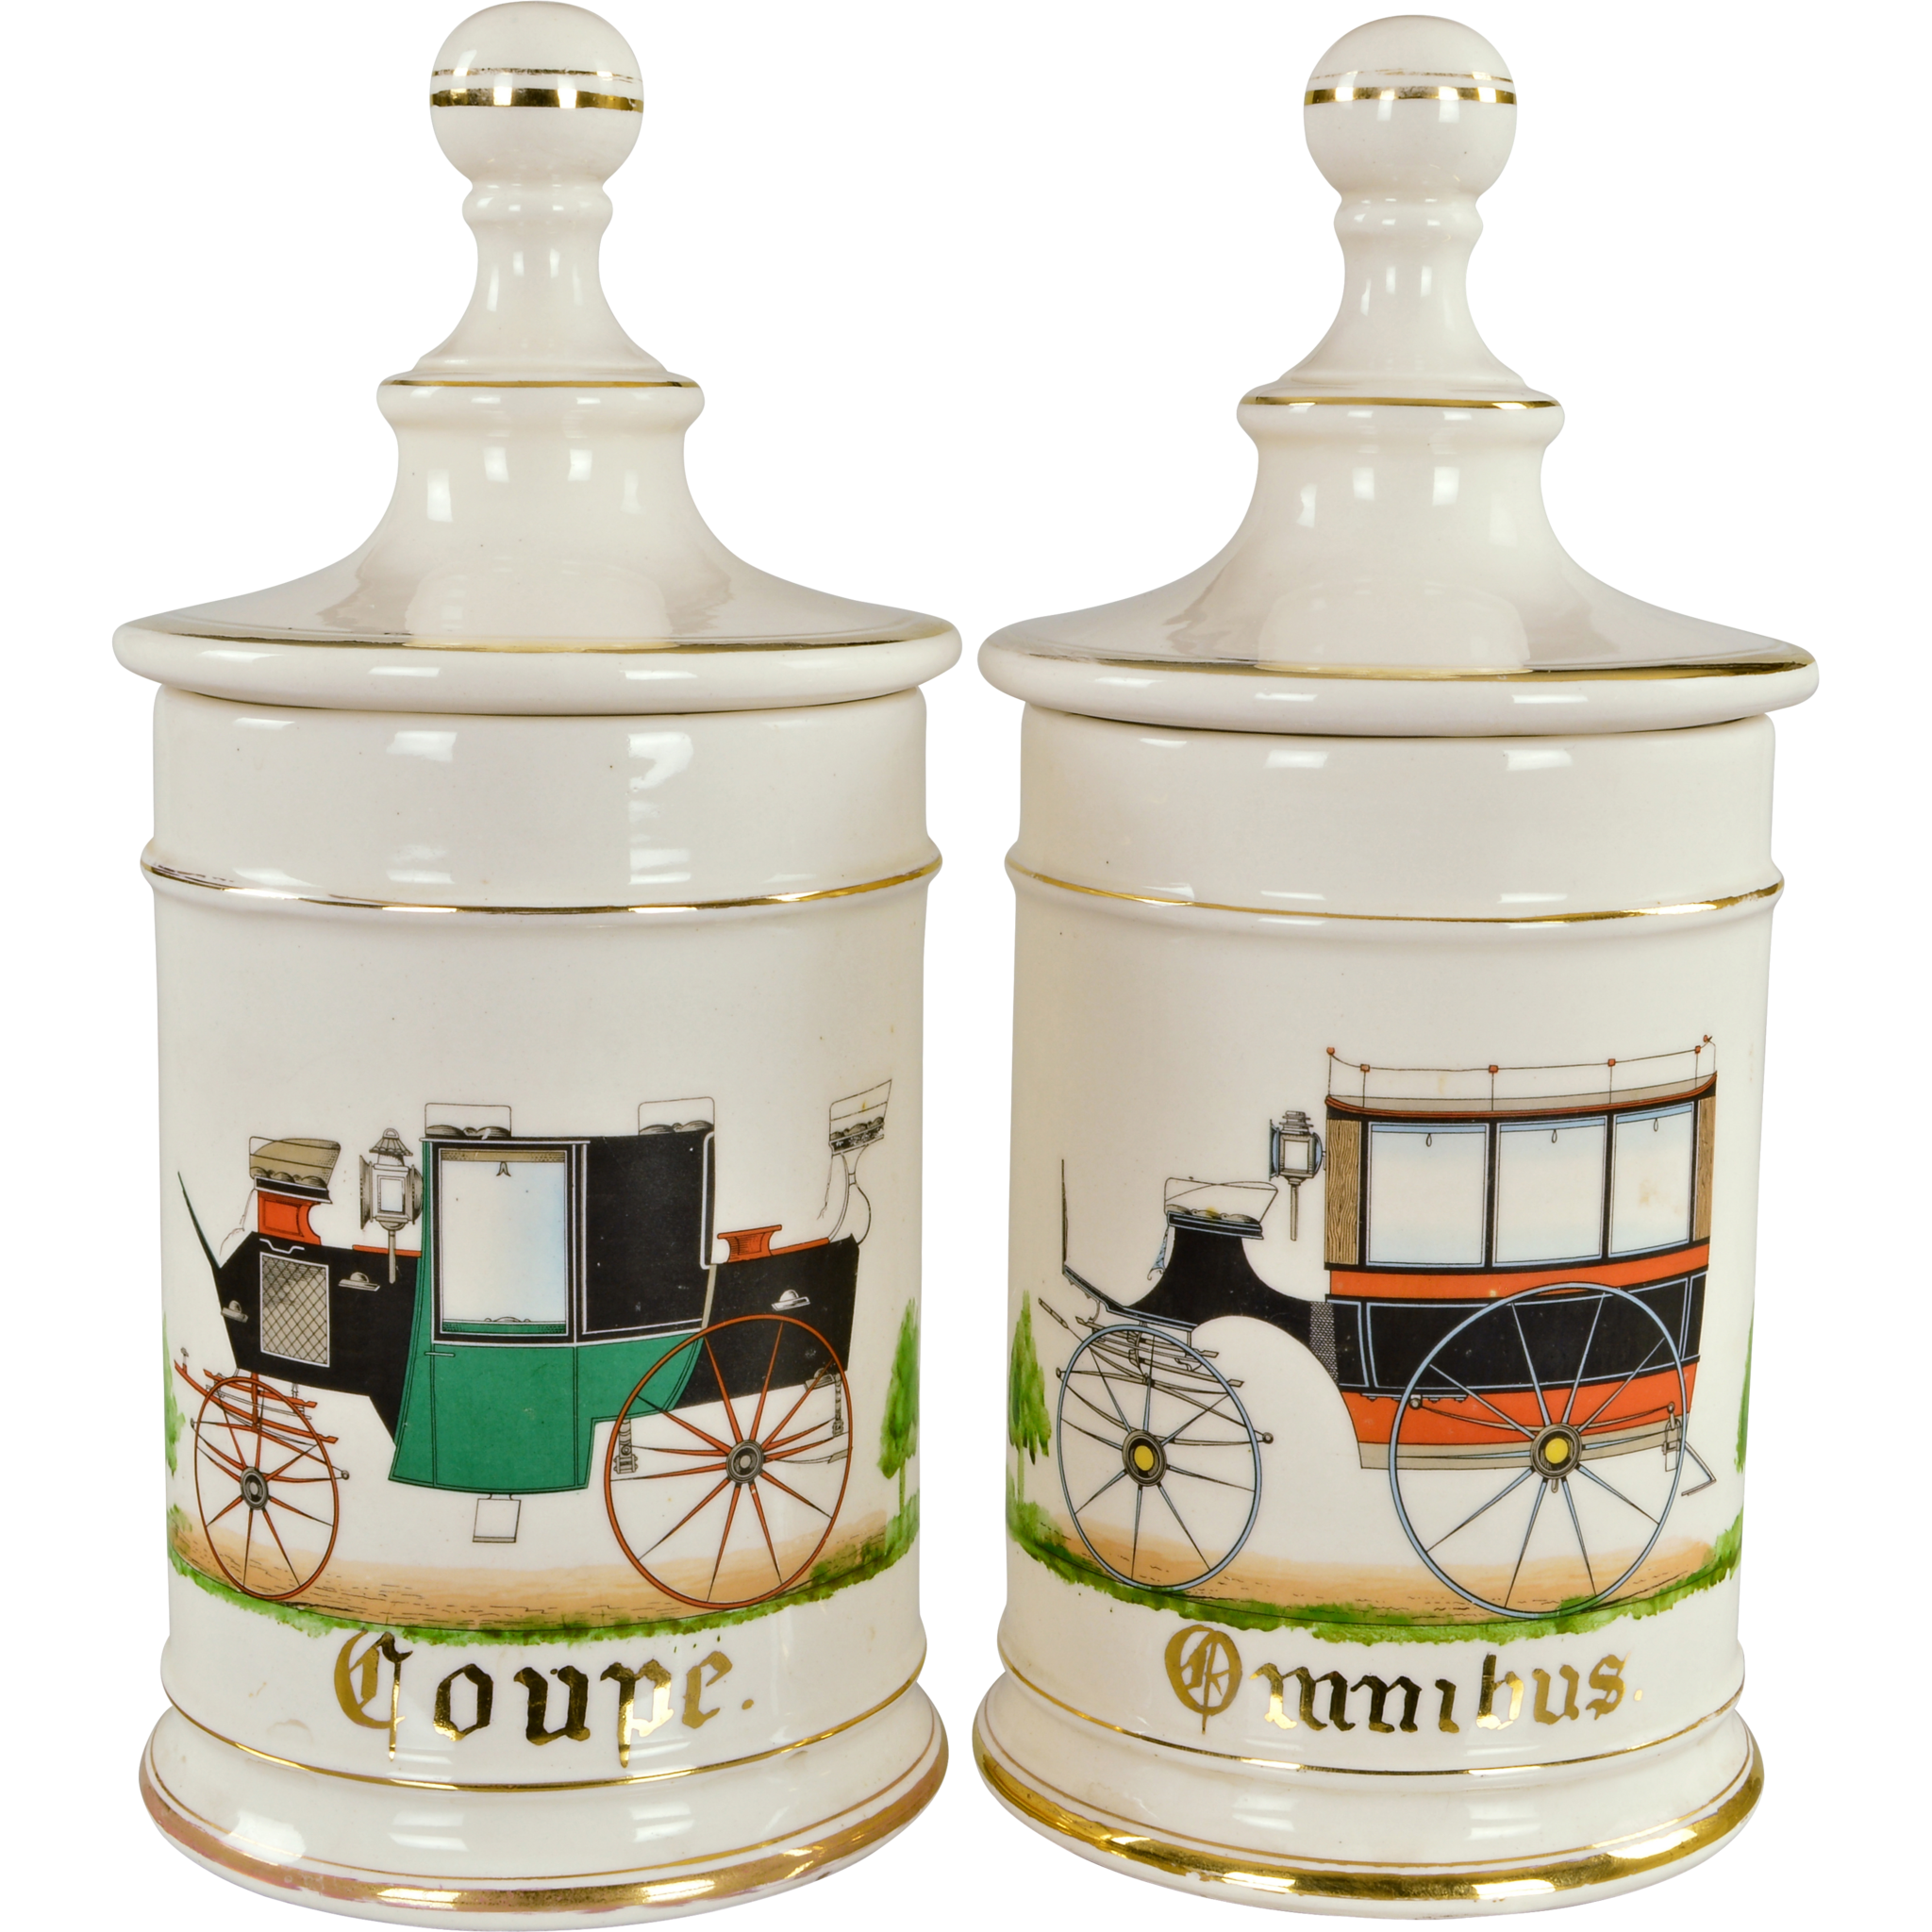 Pair Vintage Apothecary Jars with Antique French Automobiles